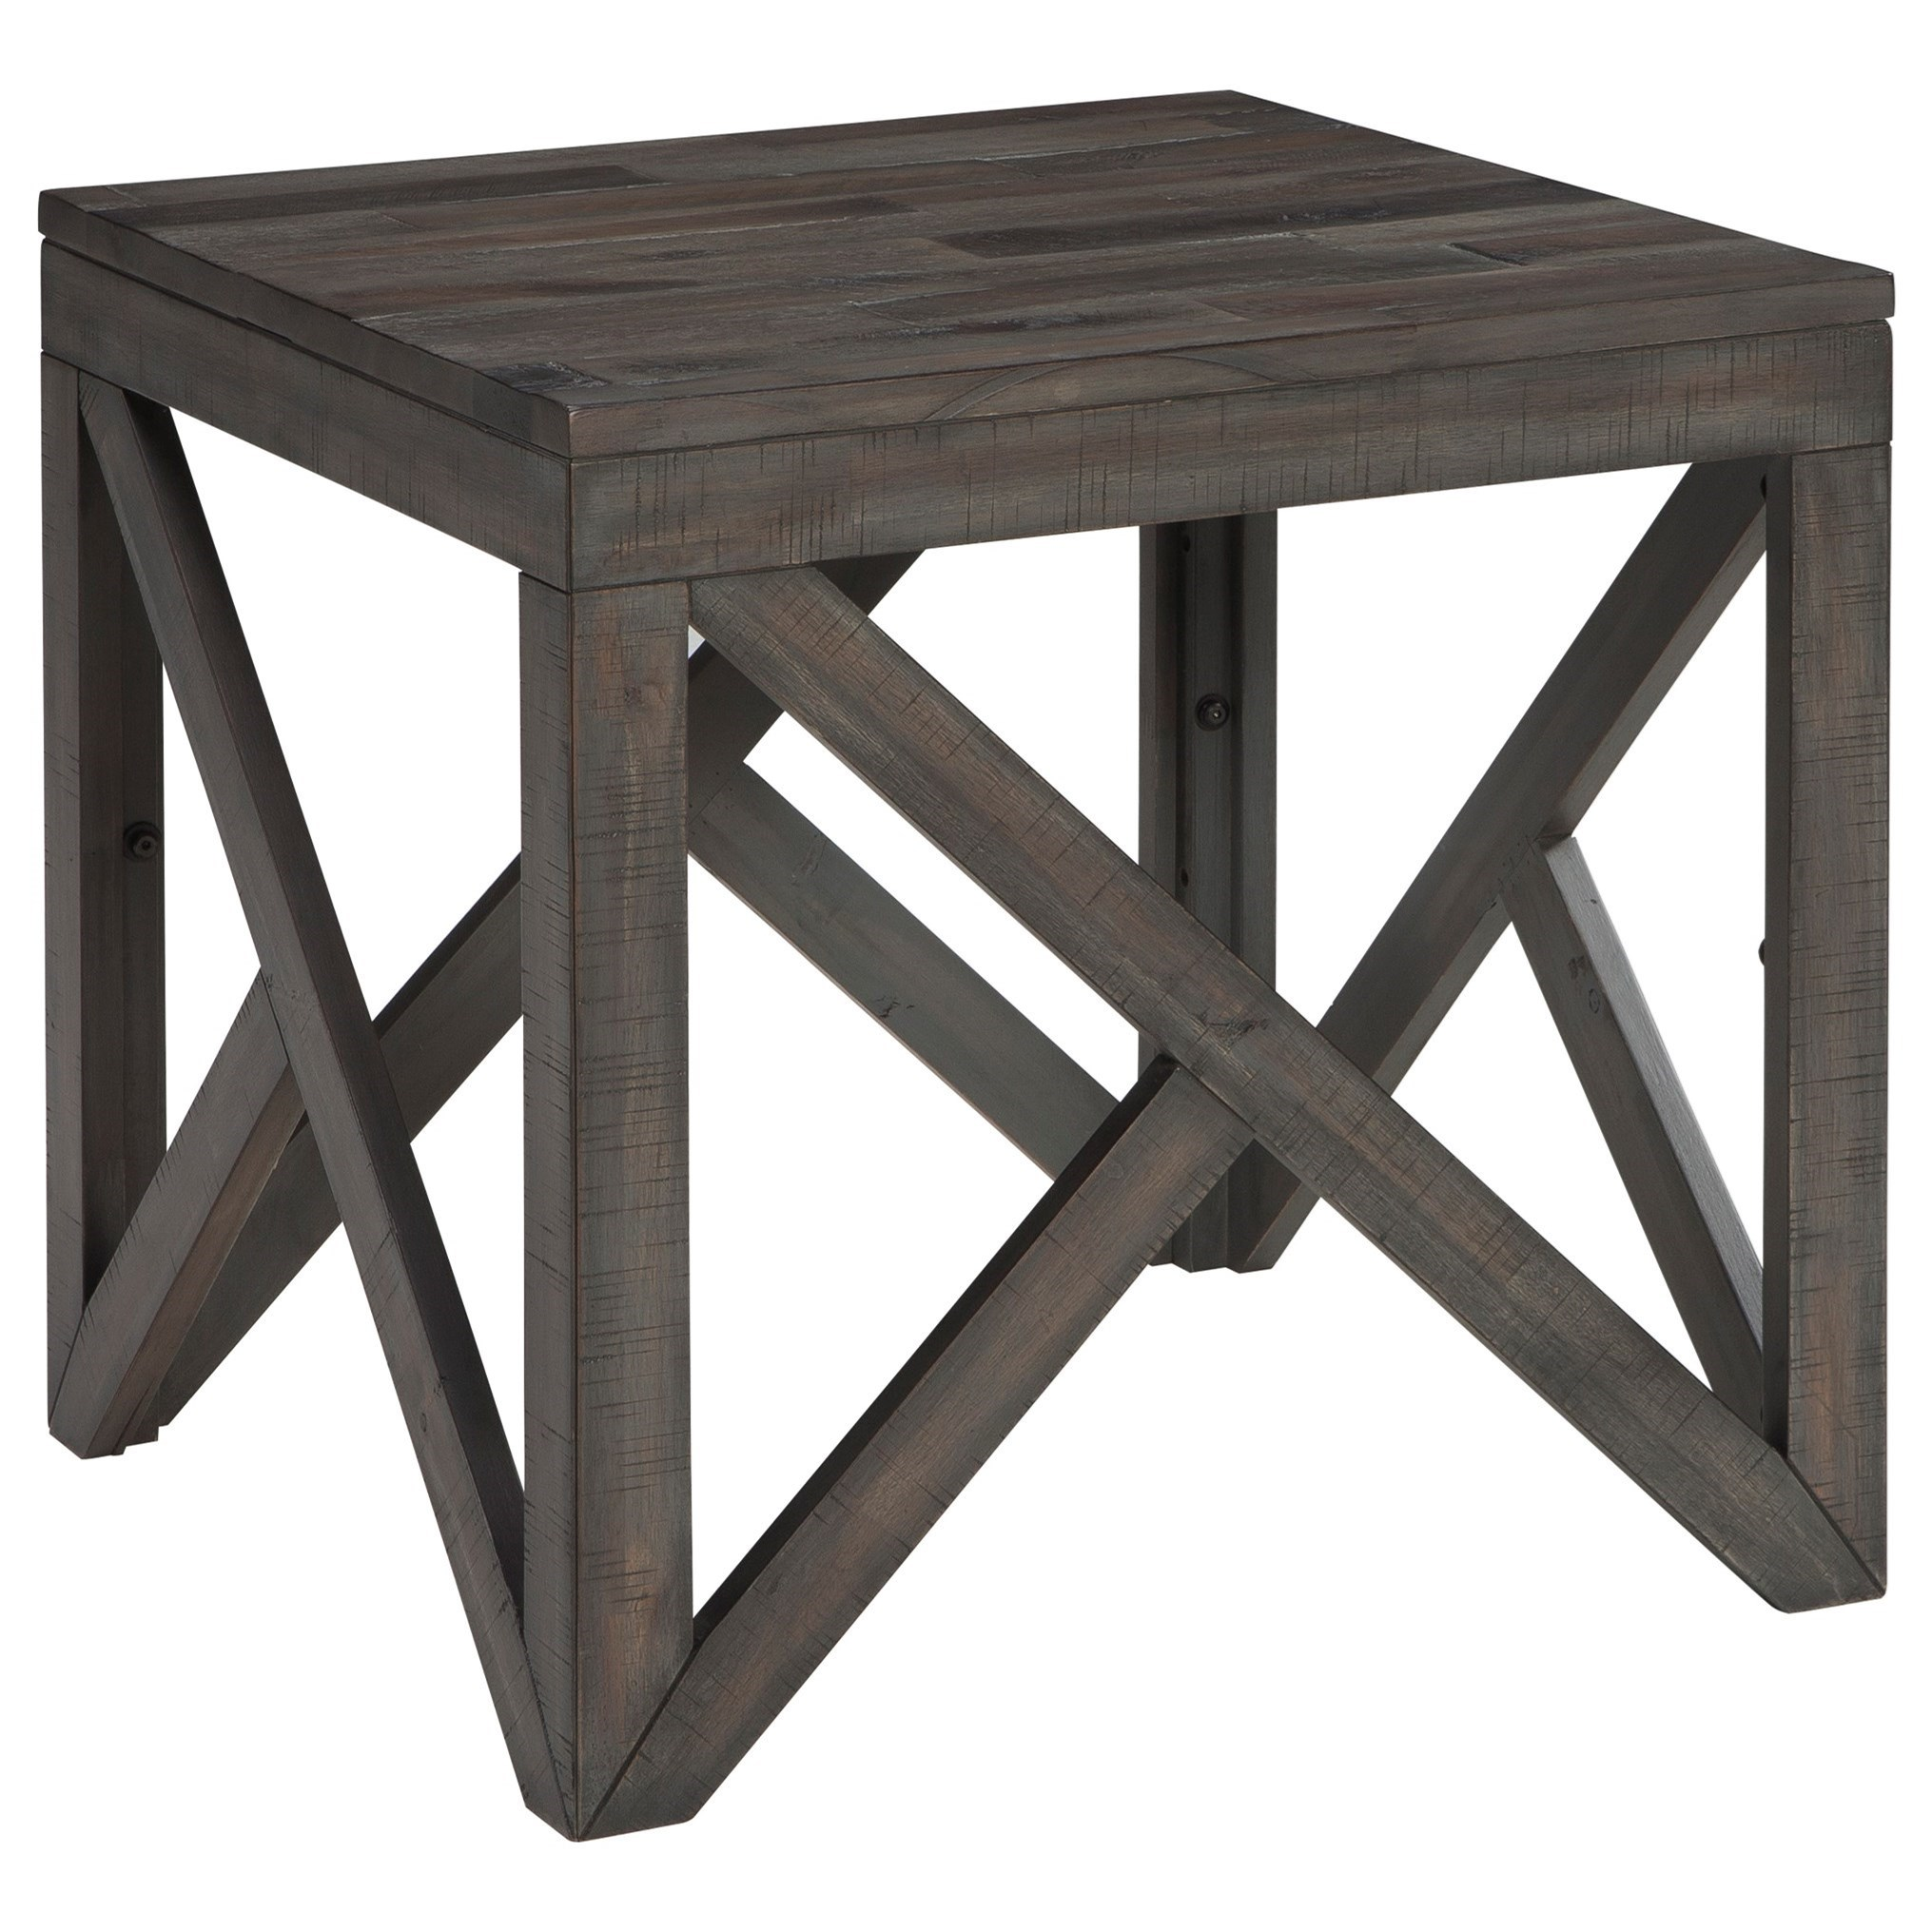 Signature Design by Ashley Haroflyn Square End Table - Item Number: T329-2